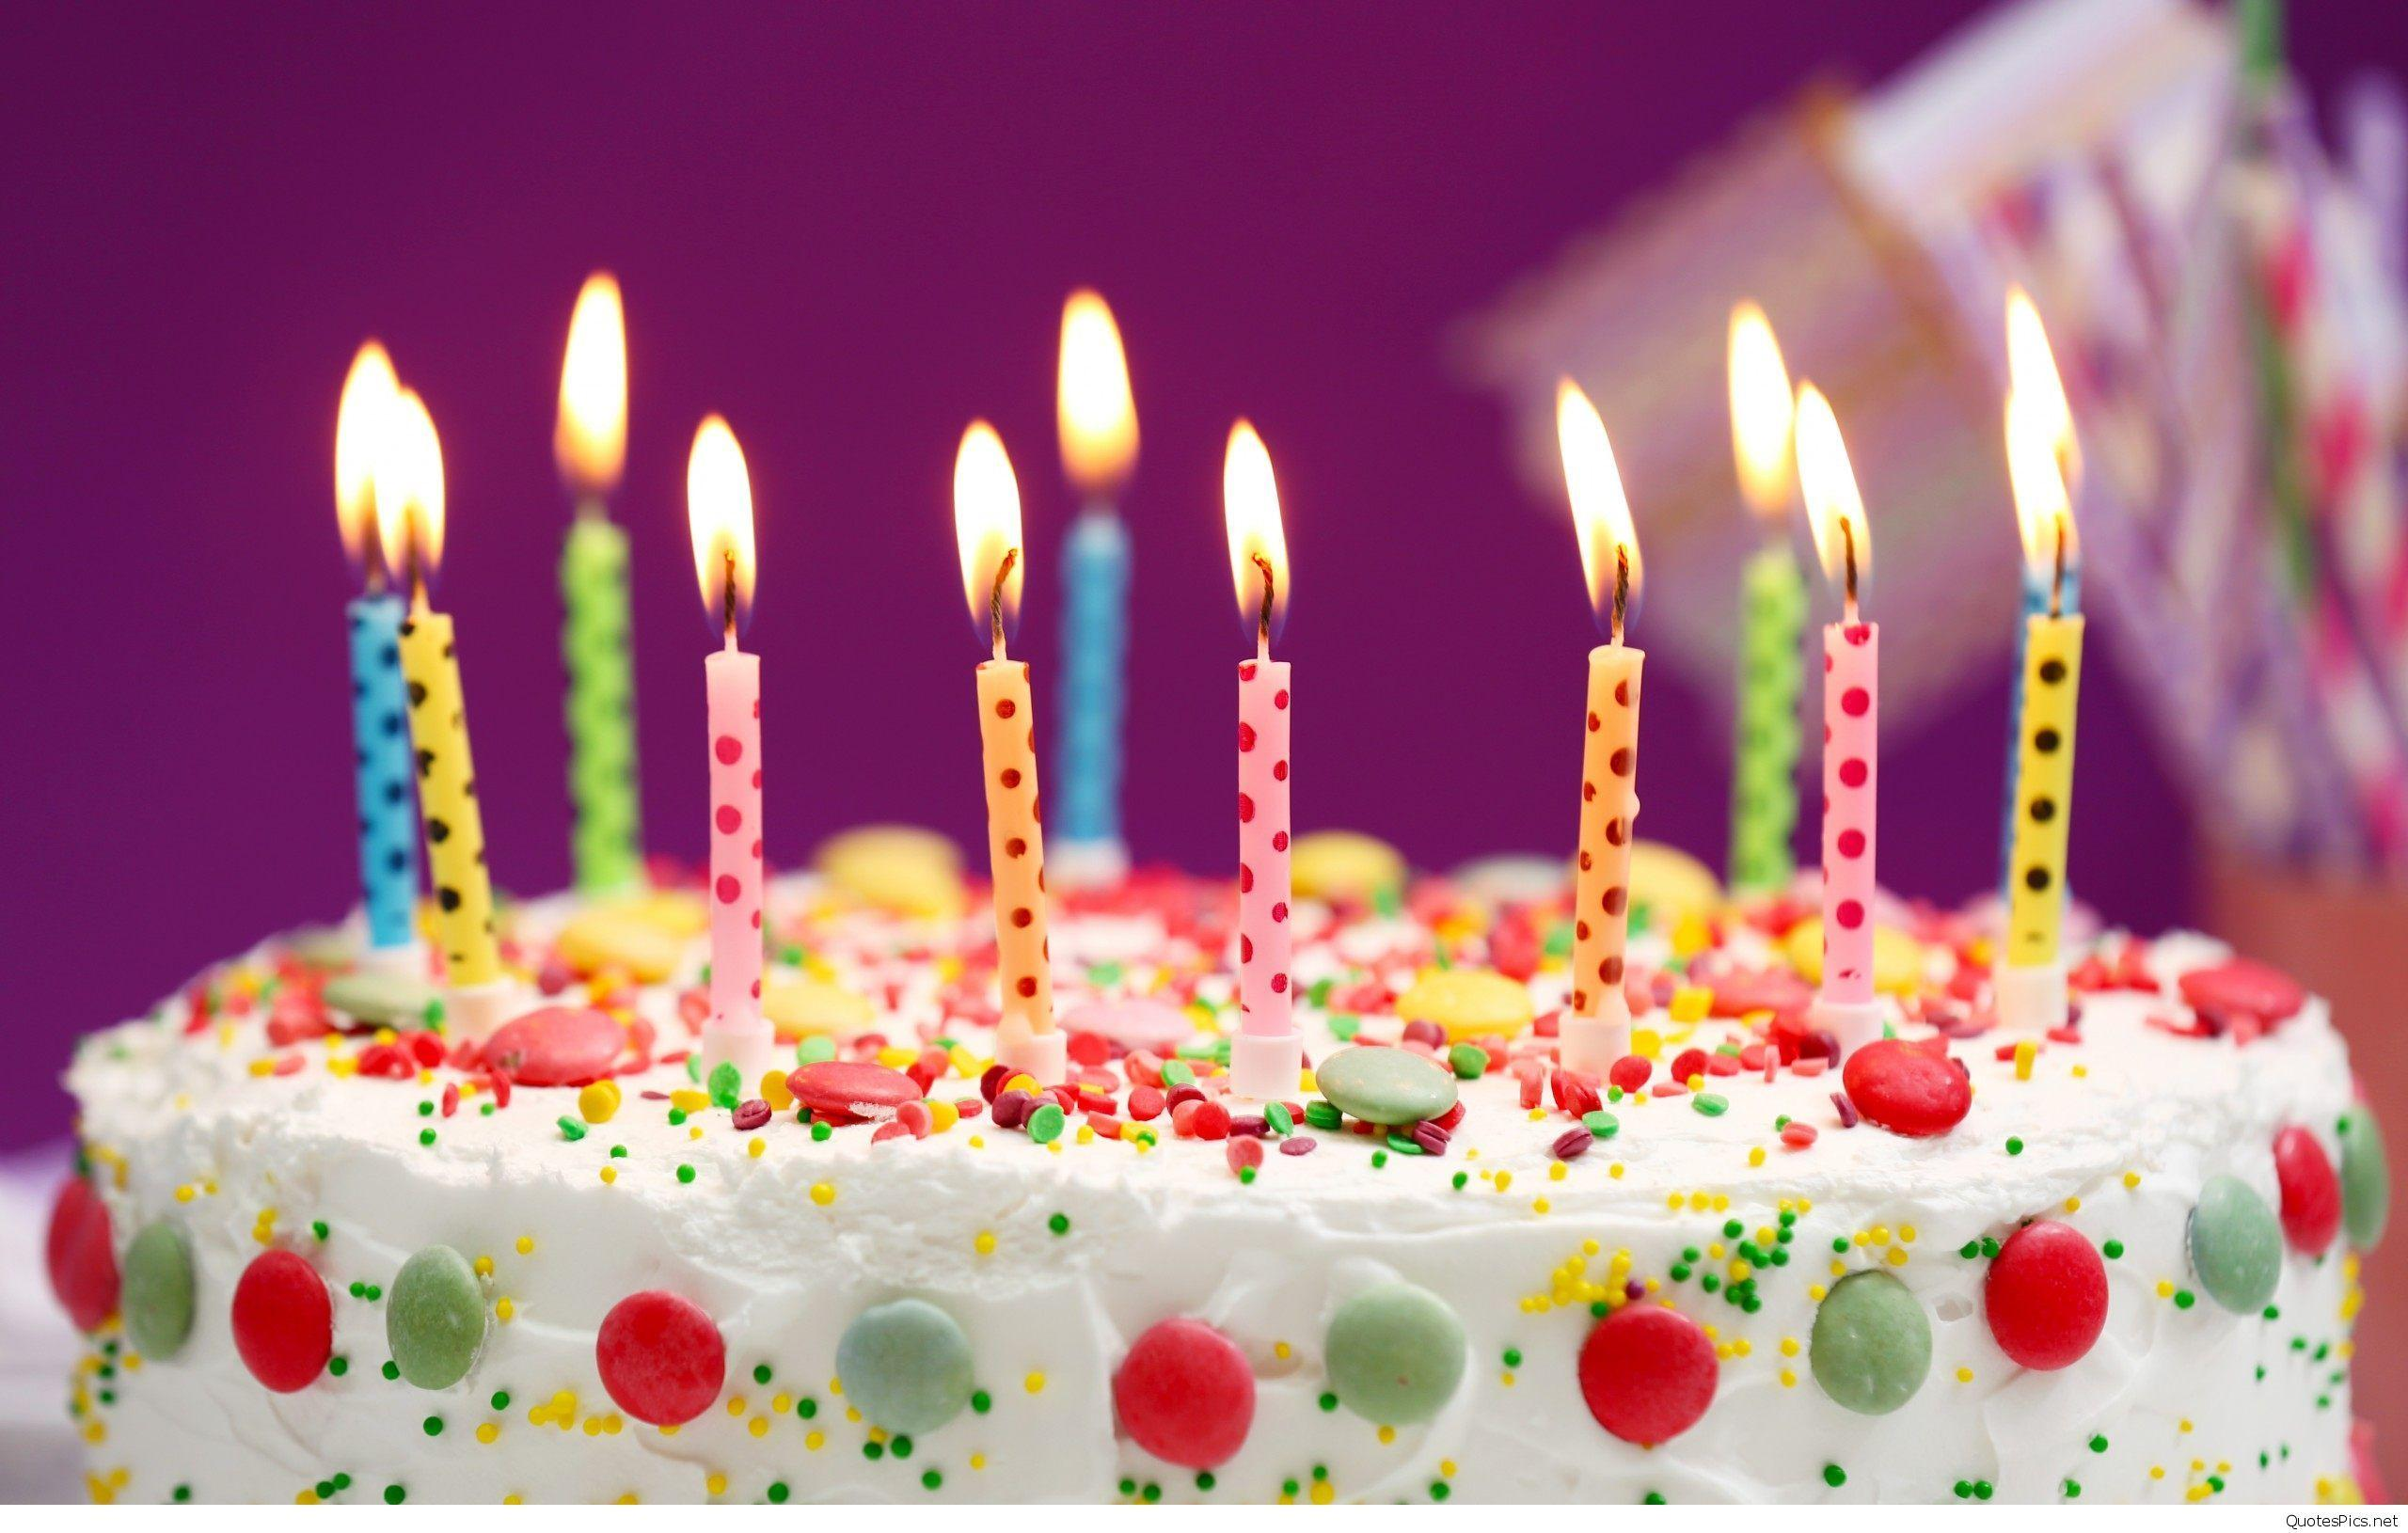 Birthday Cake Wallpapers Download Pixelstalknet